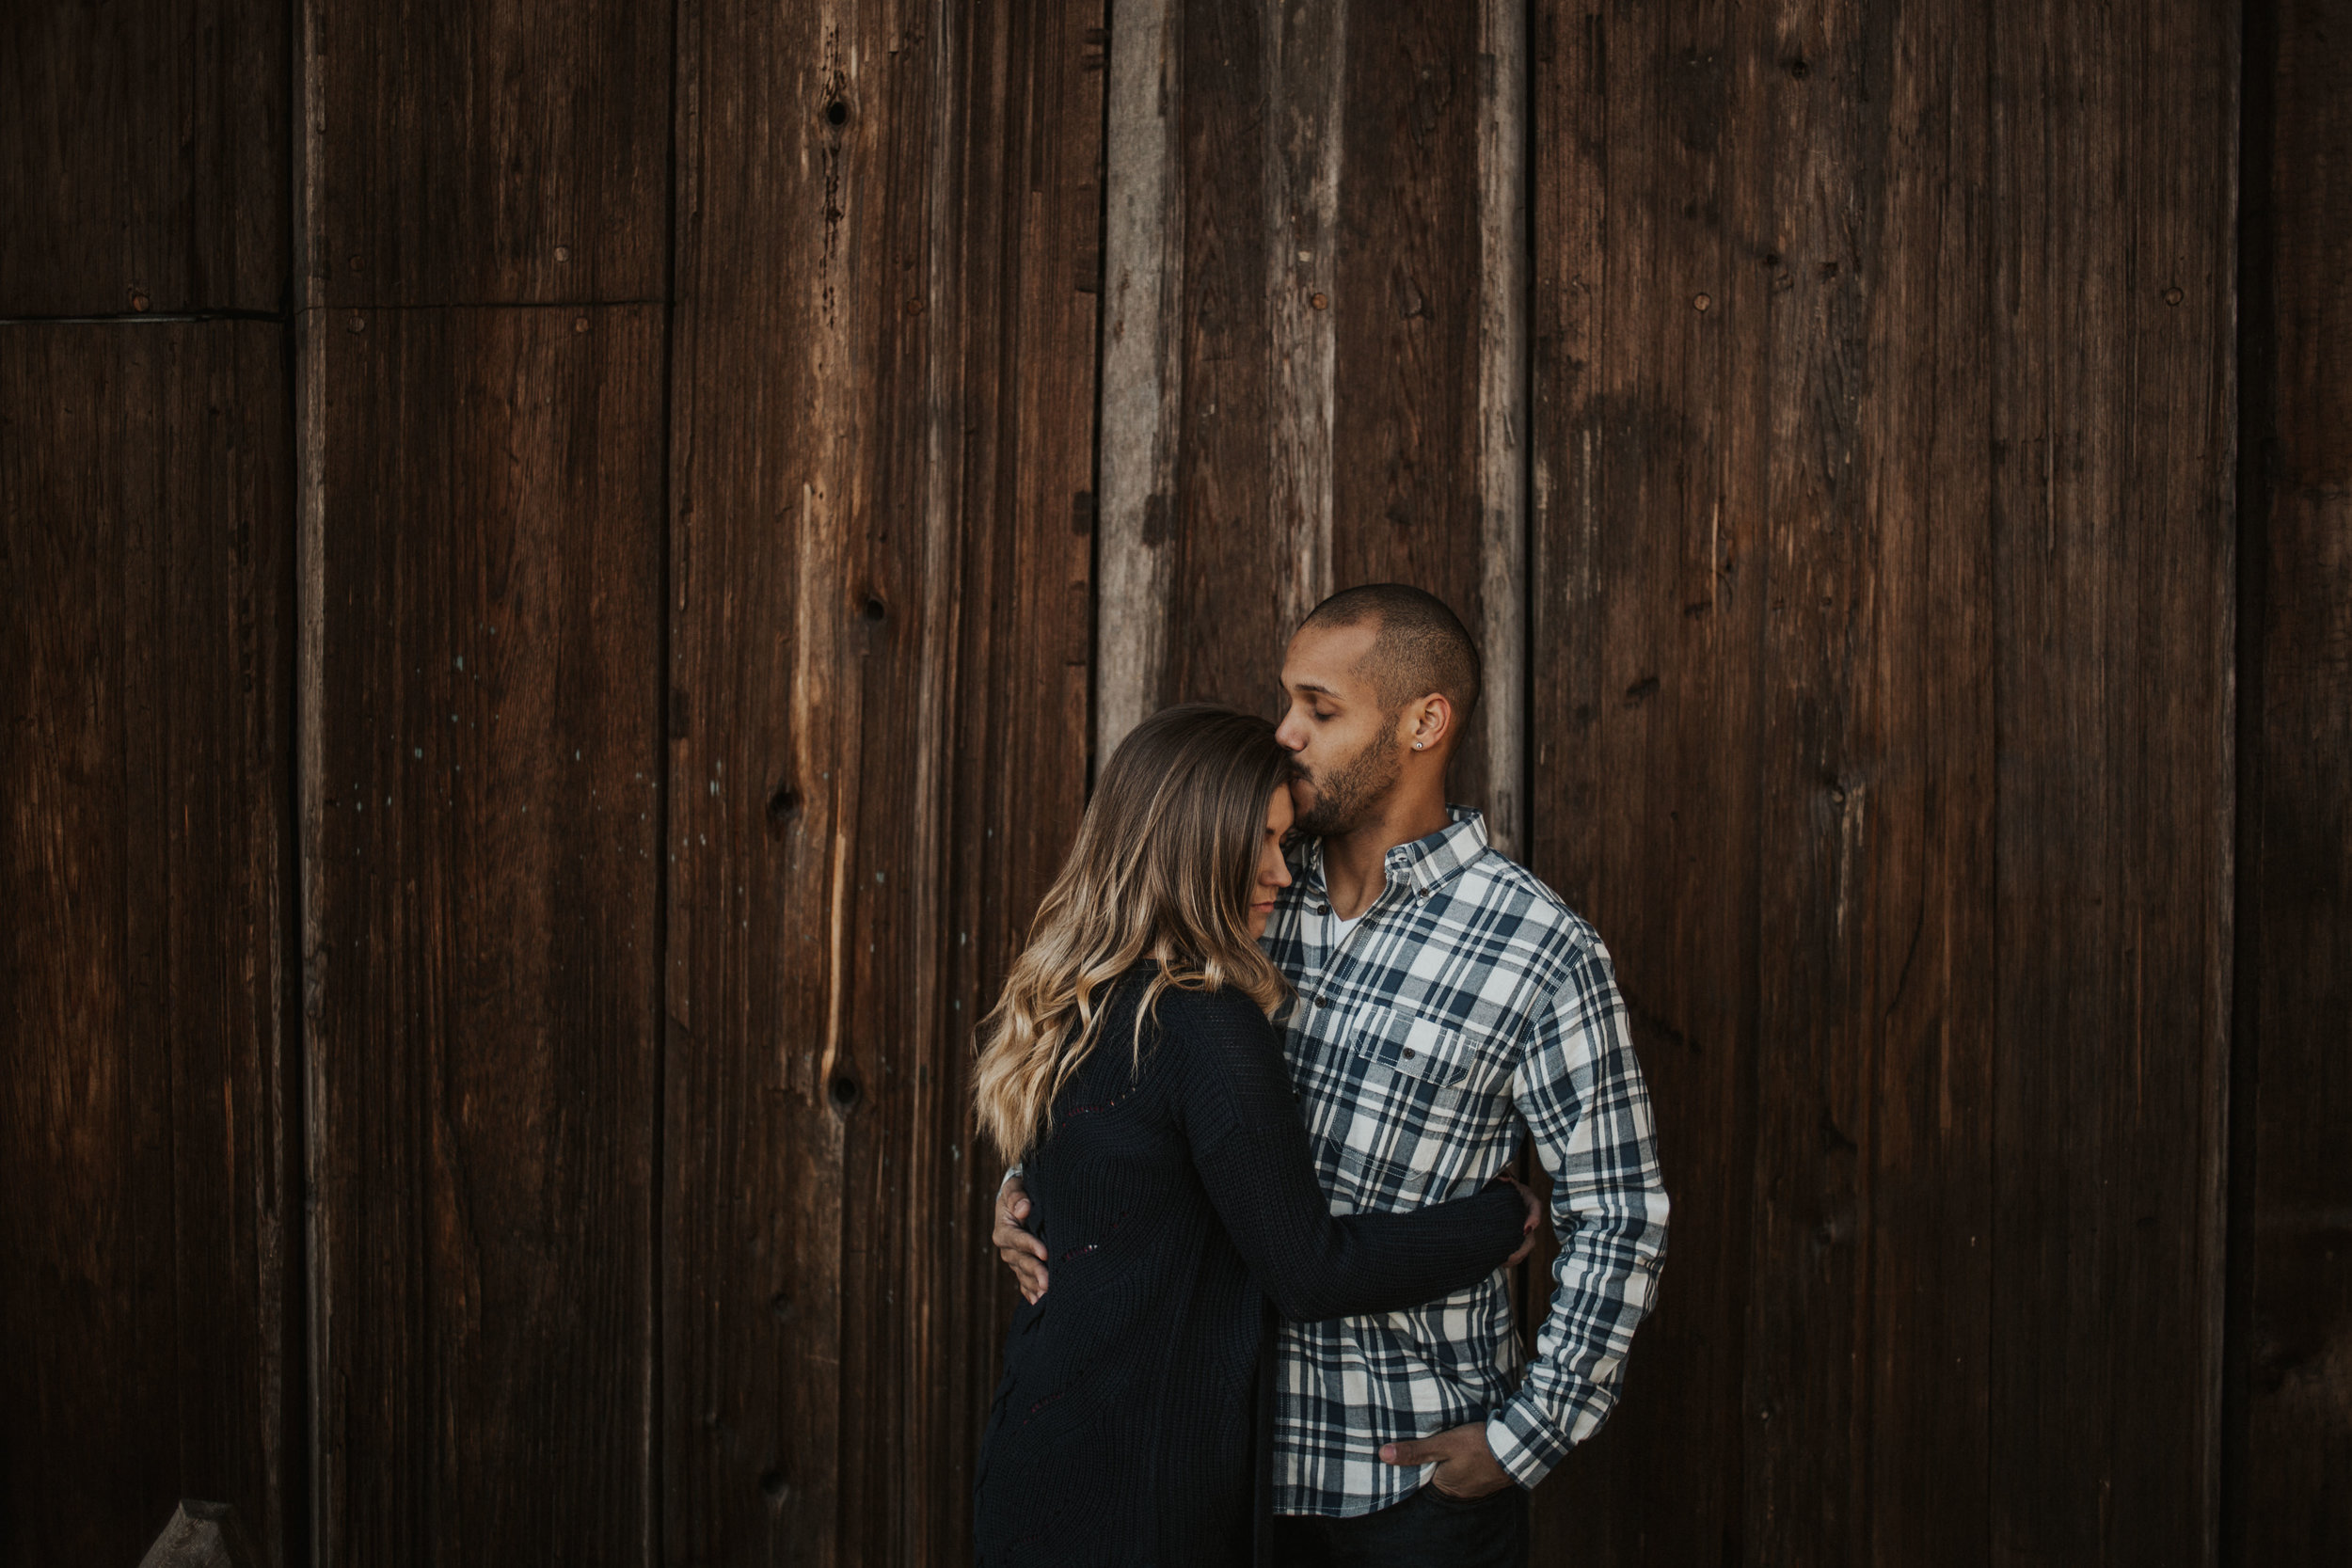 couple-engagement-photos-ridgefield-washington-august-muse-images-7.jpg